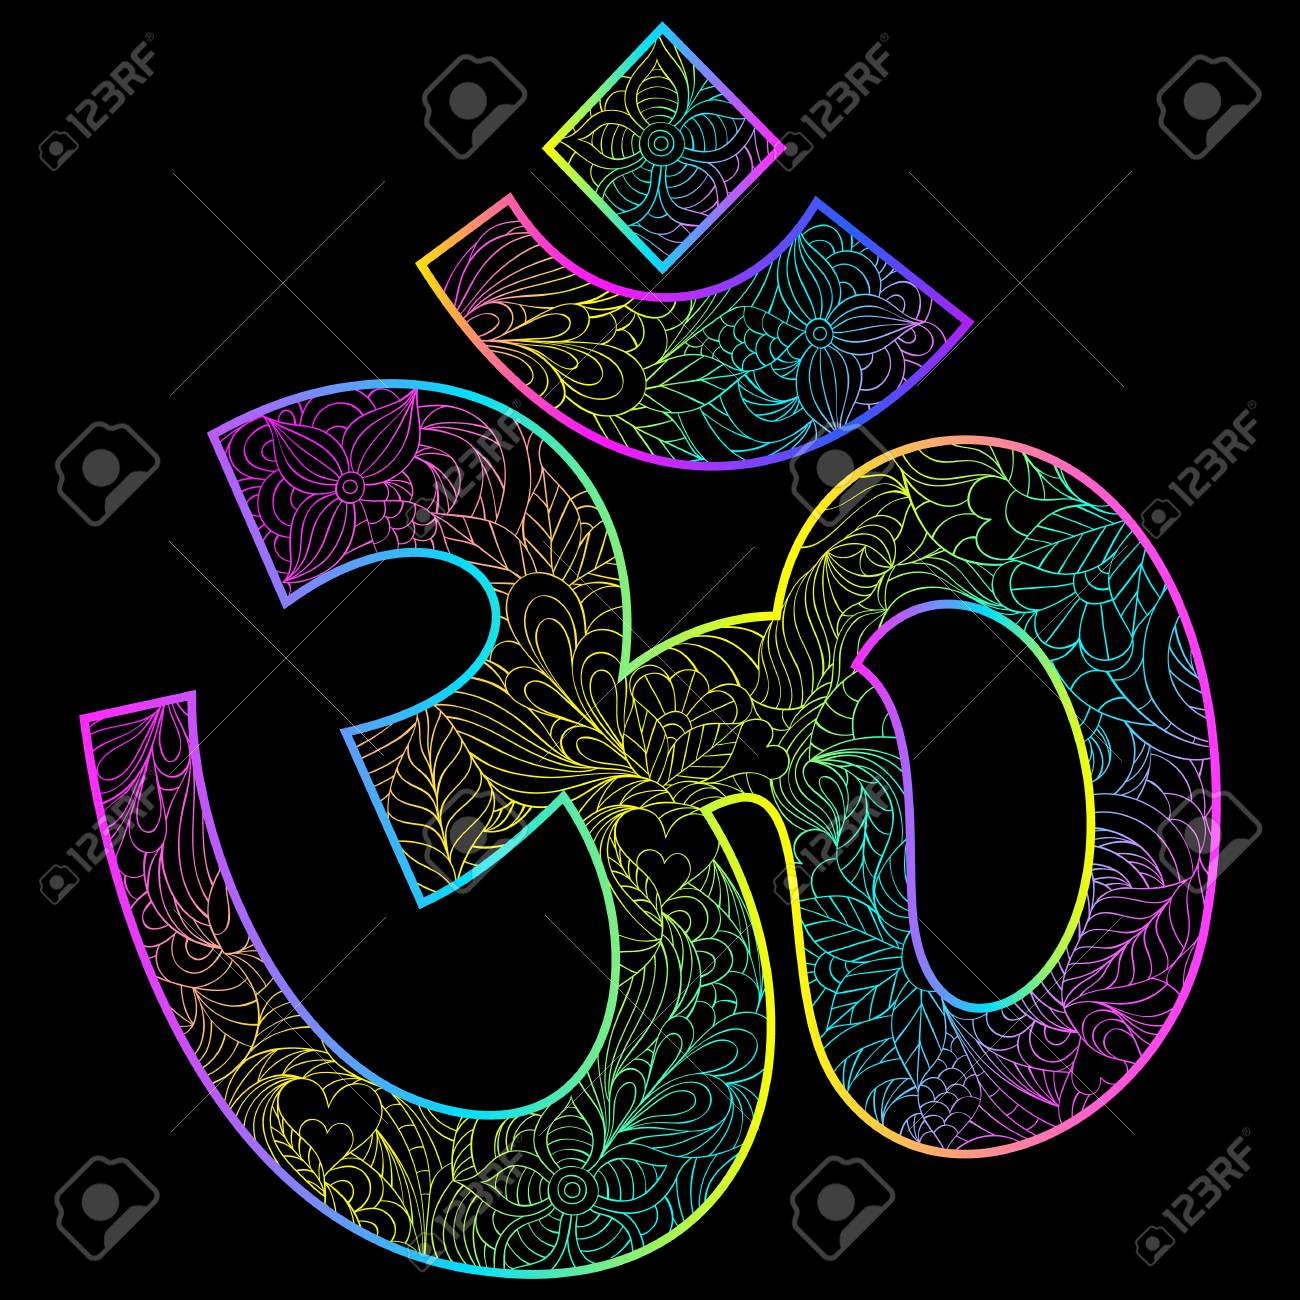 Om Symbol On Black Background Royalty Free Cliparts Vectors And